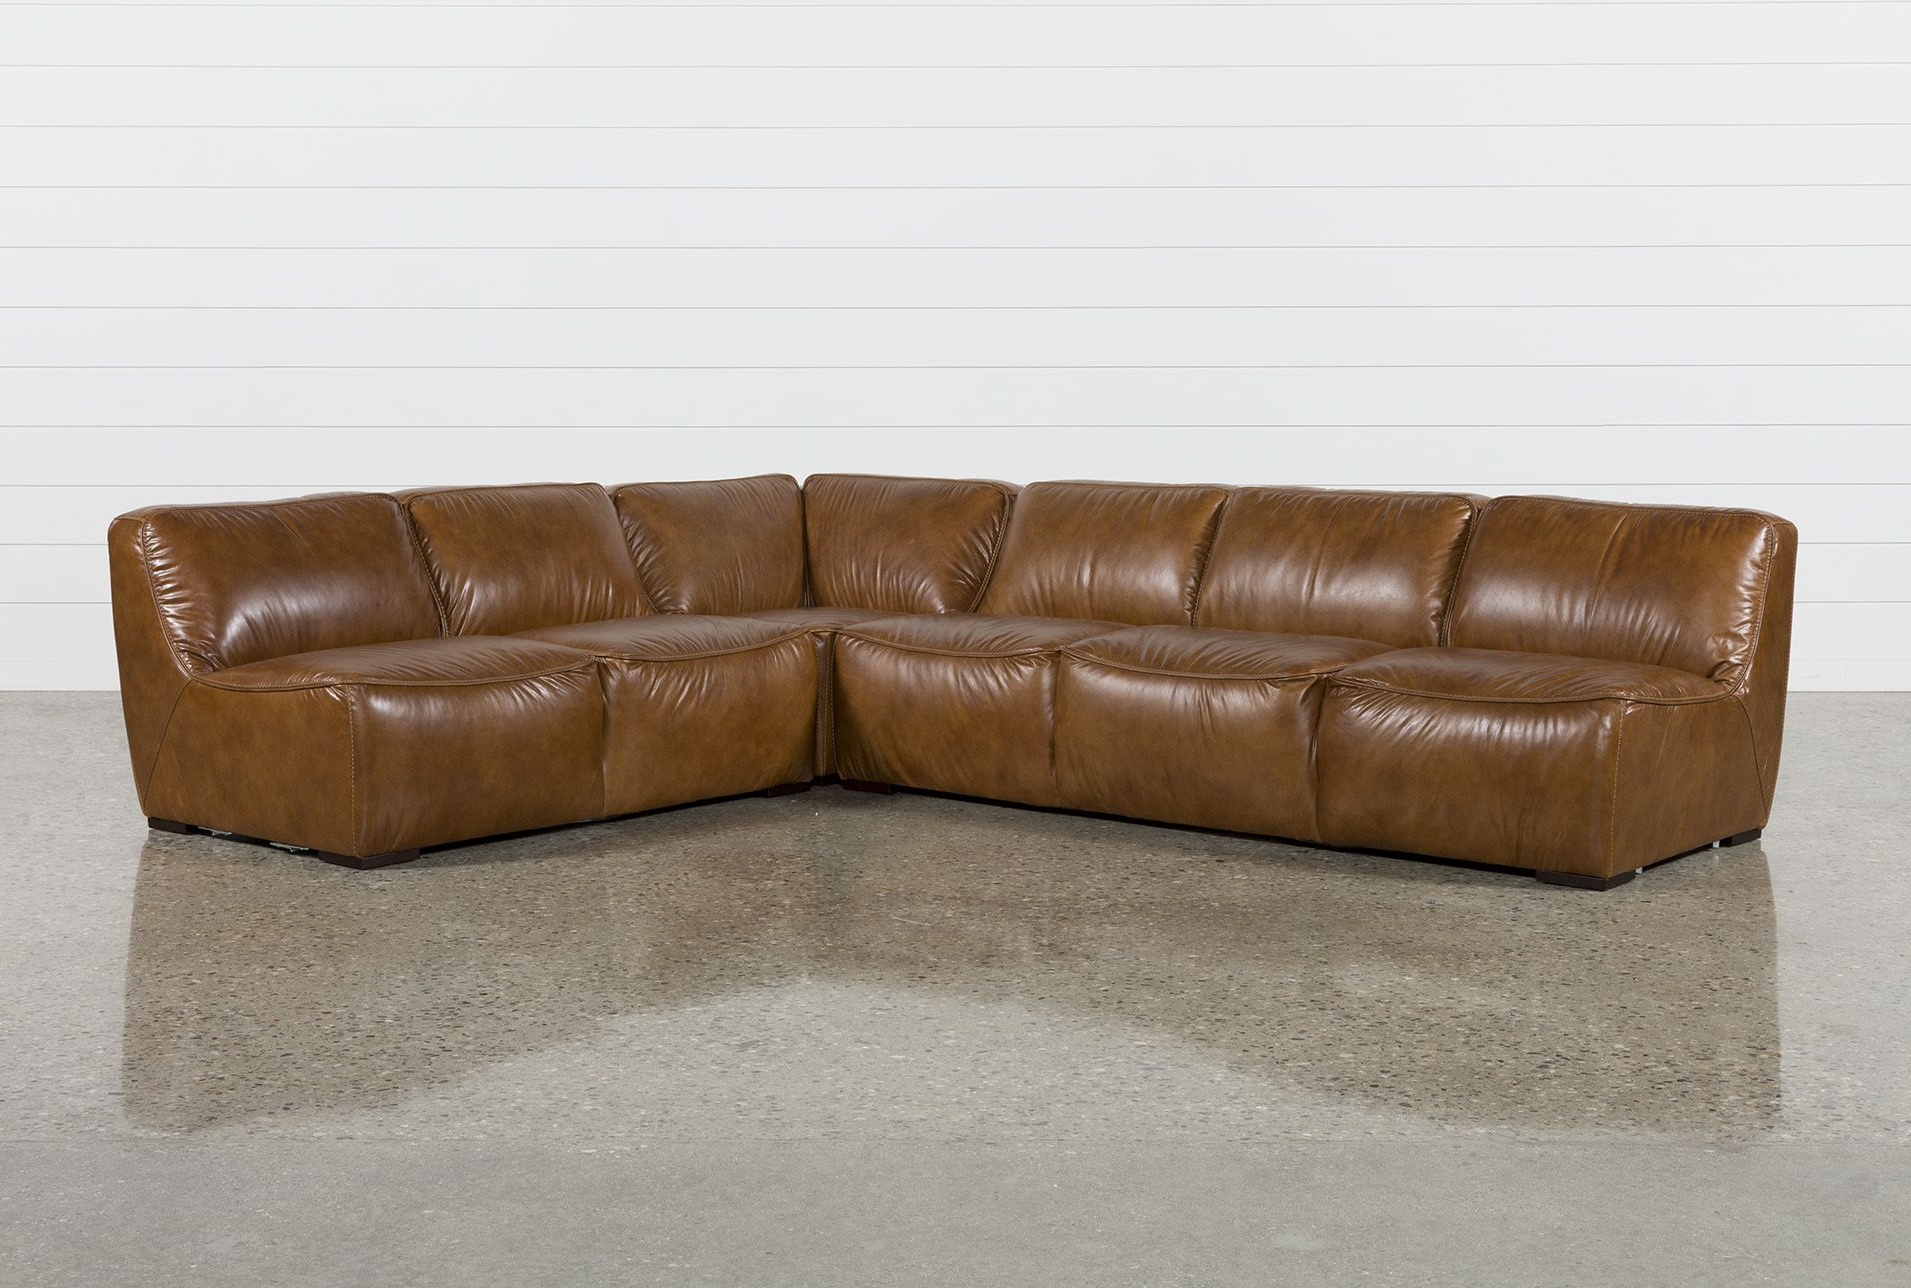 30 Things In Your Home You Should Get Rid Ofage 30 Within Latest Norfolk Chocolate 3 Piece Sectionals With Raf Chaise (Gallery 14 of 20)